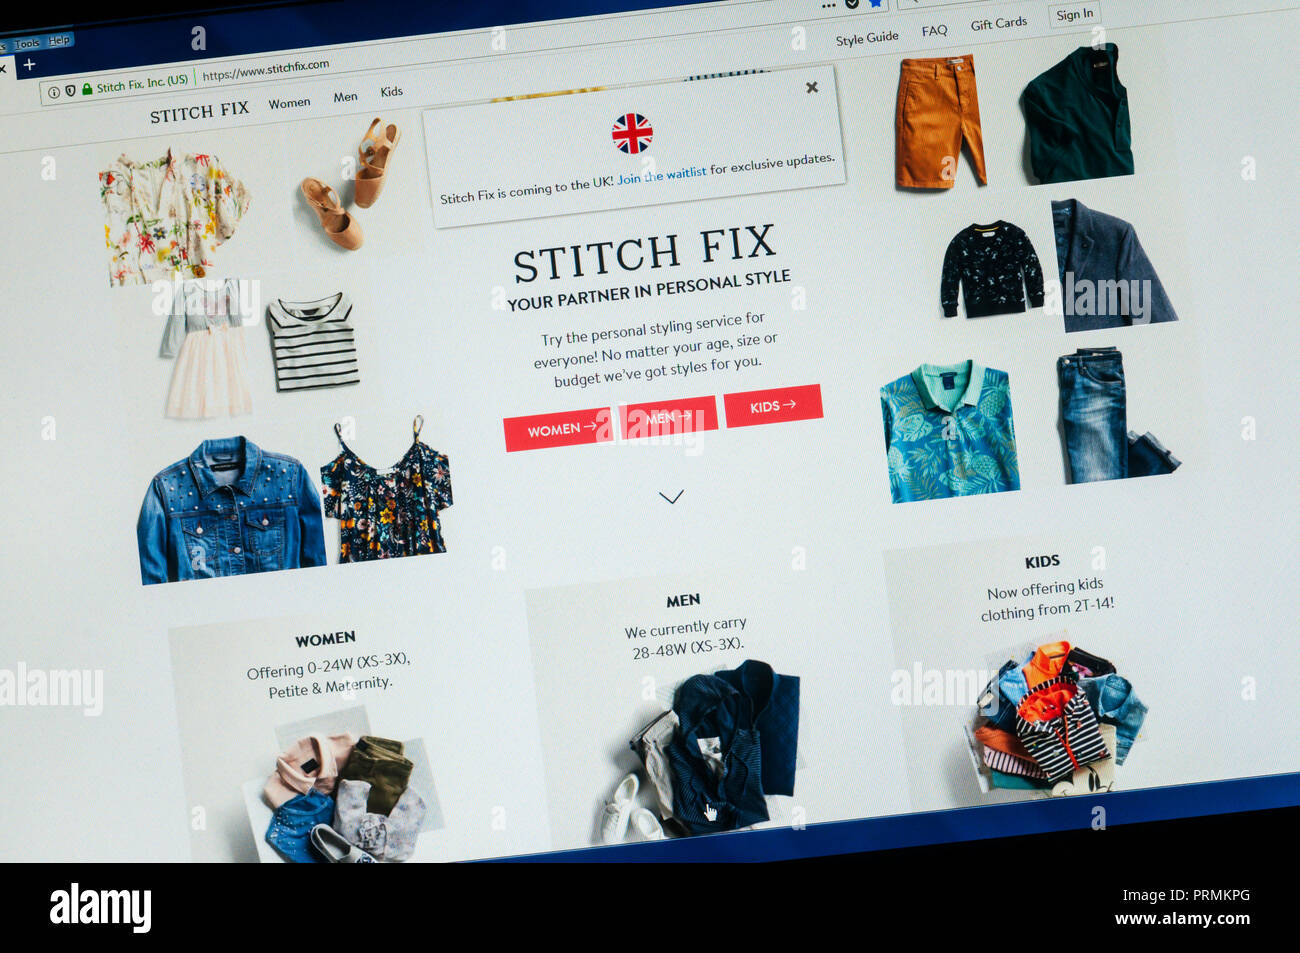 Home page of the American clothing website Stitch Fix with window announcing it is coming to UK. - Stock Image